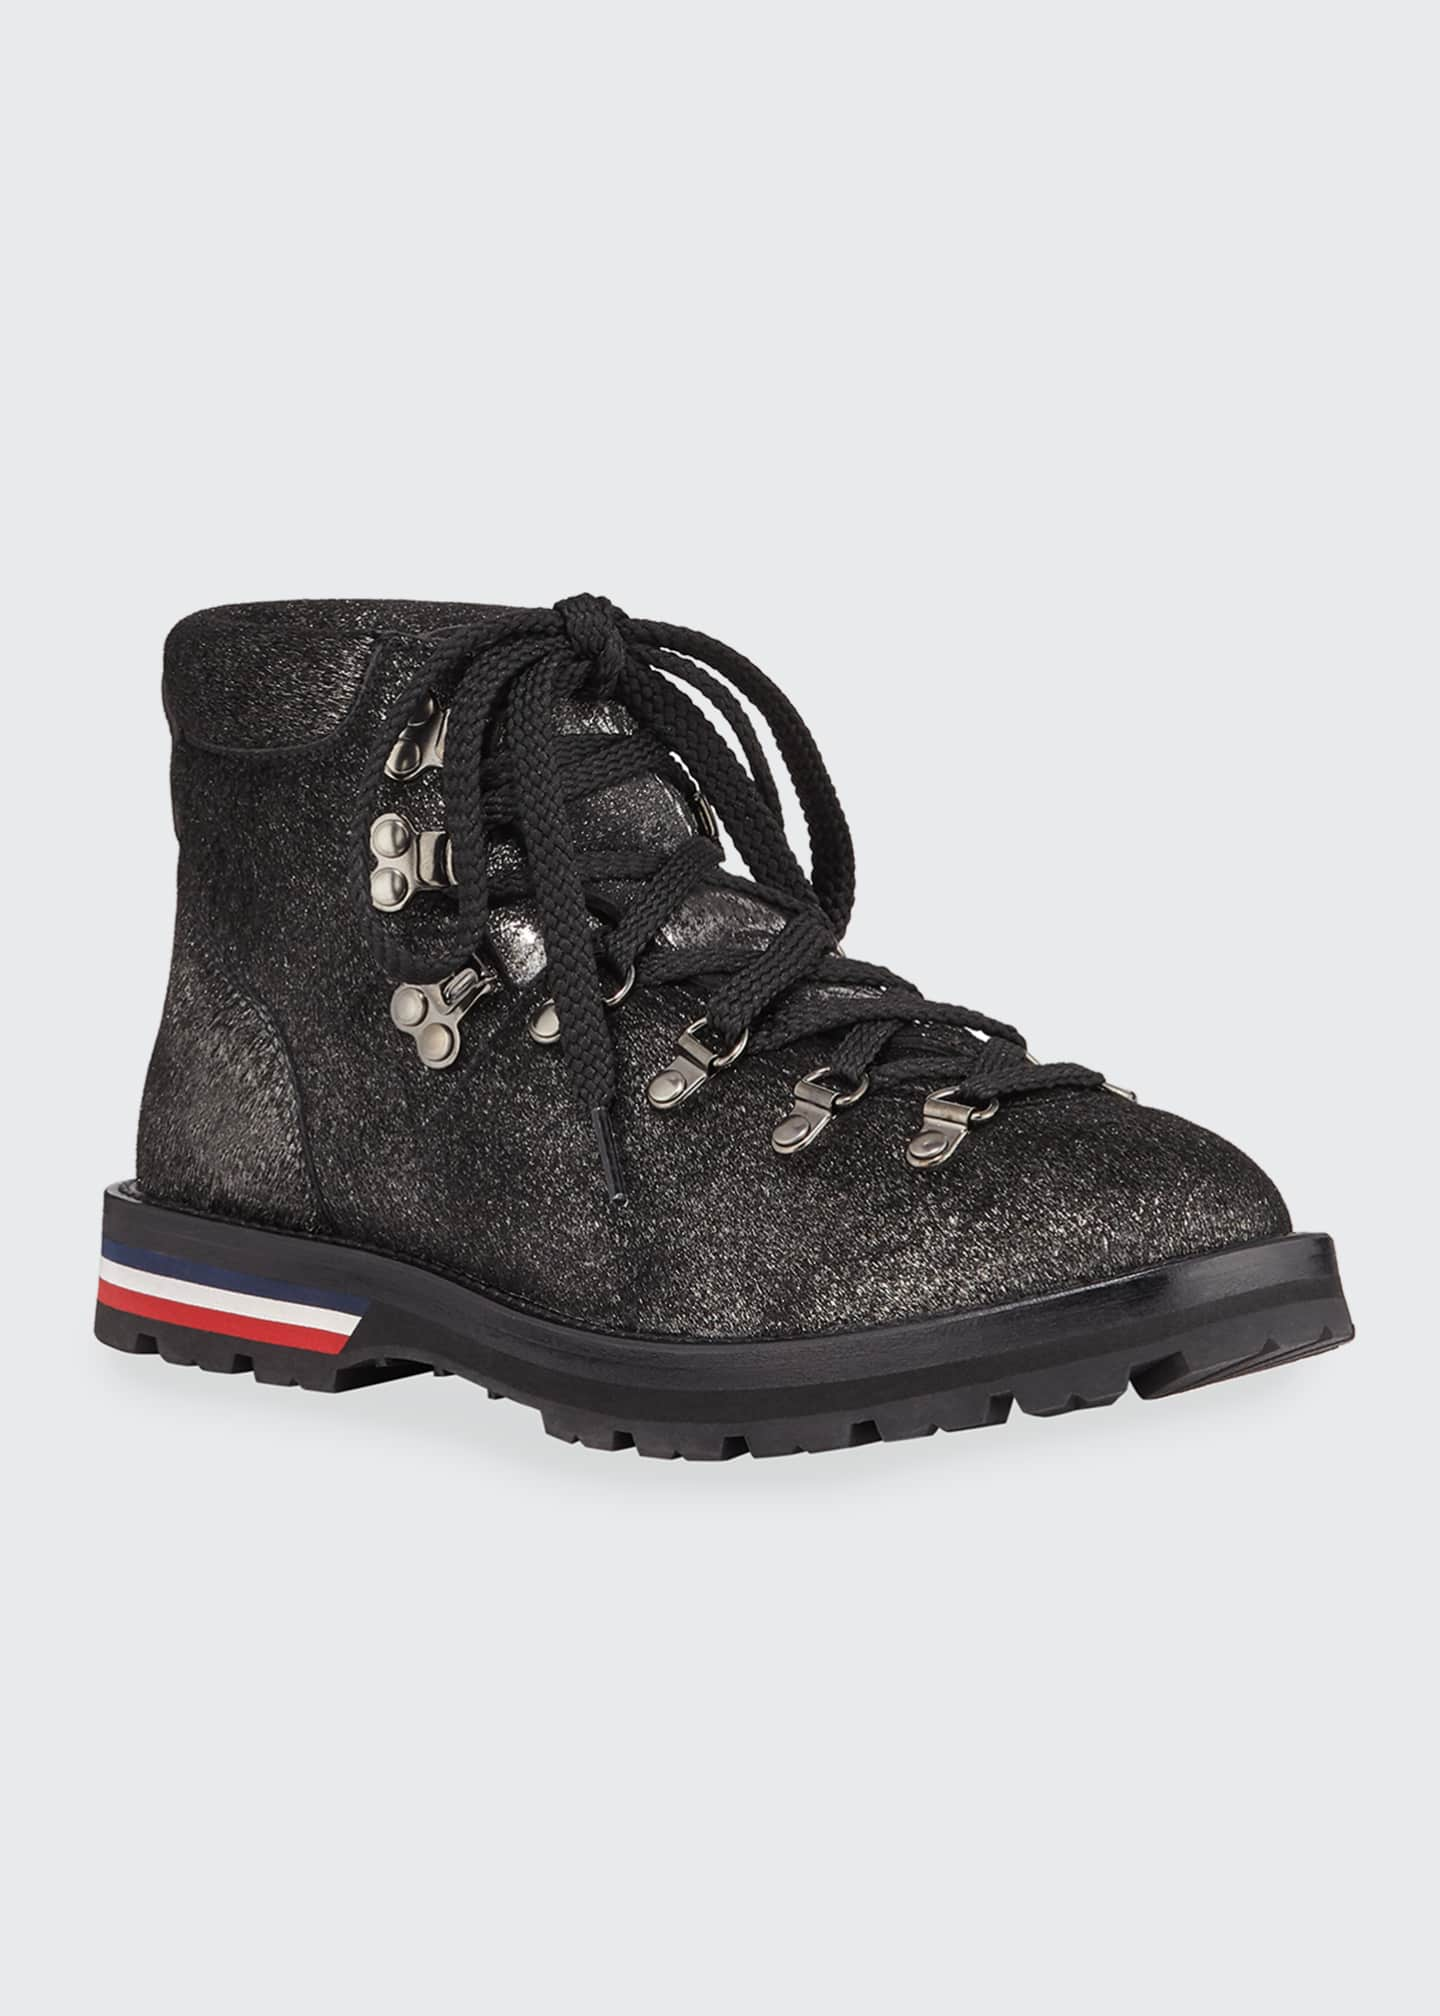 Image 2 of 3: Blanche Glitter Lace-Up Scarpa Boots